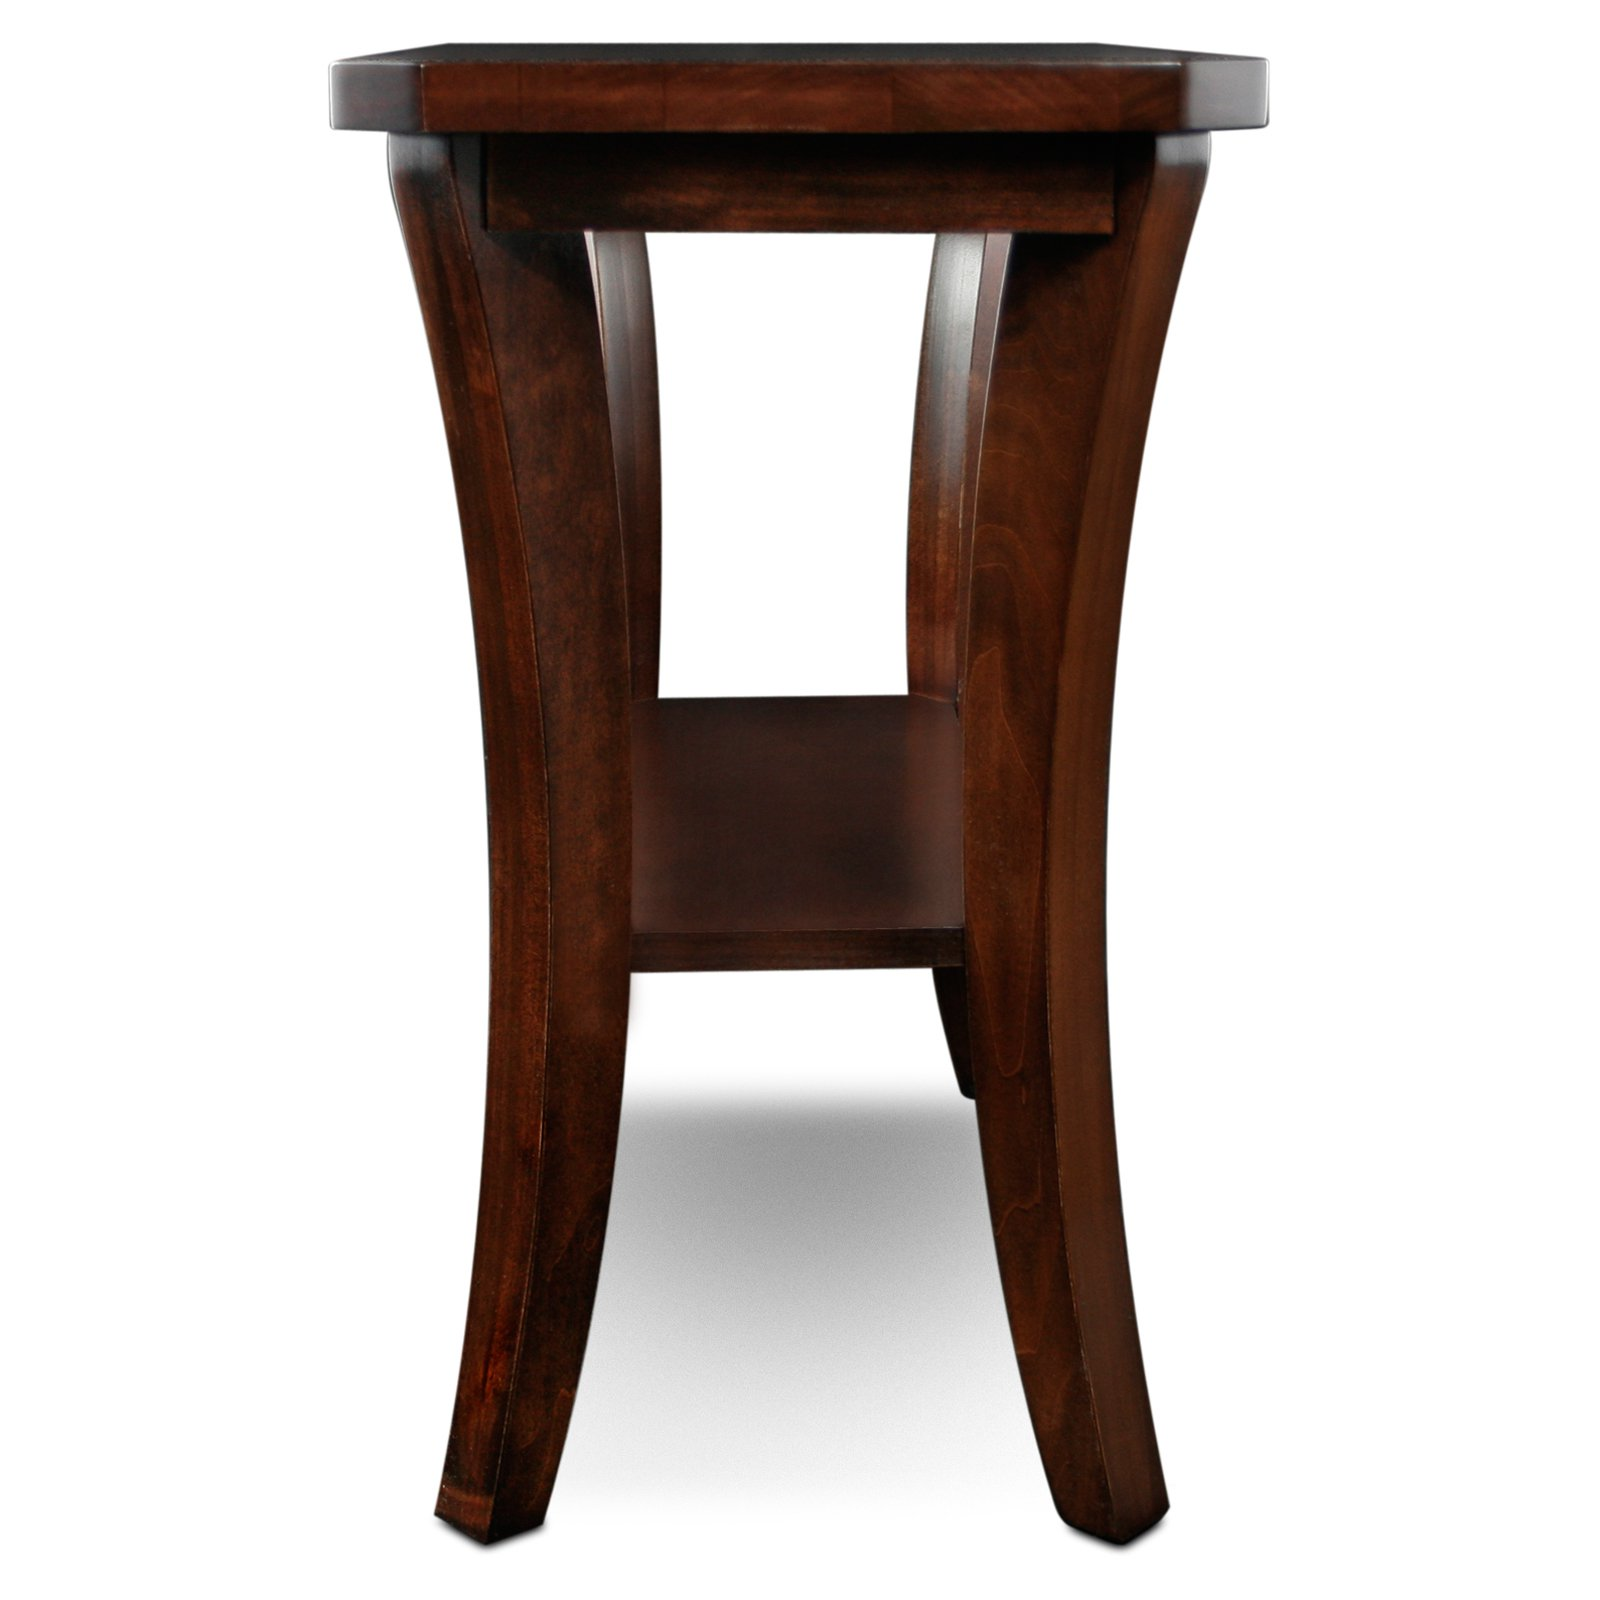 leick furniture boa collection solid wood narrow chairside end table tables stock amish chattanooga unique coffee ashley stone round green plastic garden gold marble side storage